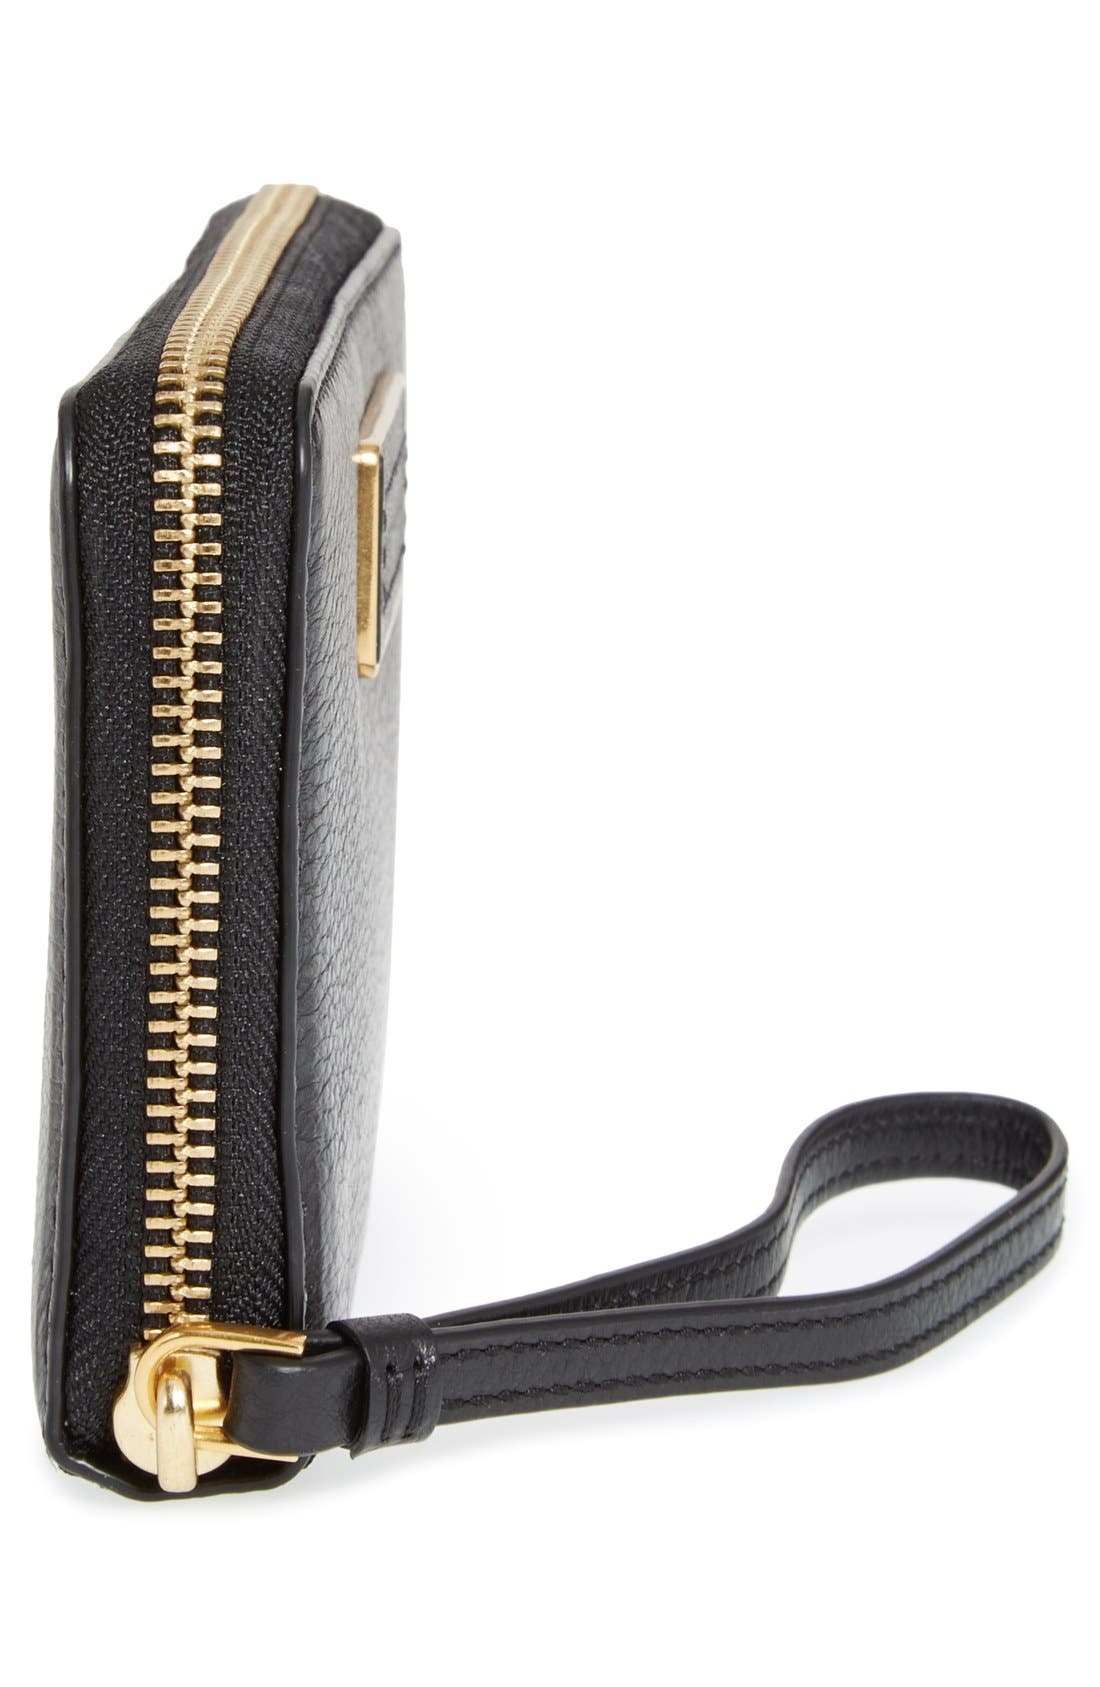 MARC JACOBS,                             MARC BY MARC JACOBS 'Too Hot To Handle - Wingman' Wallet Wristlet,                             Alternate thumbnail 2, color,                             001